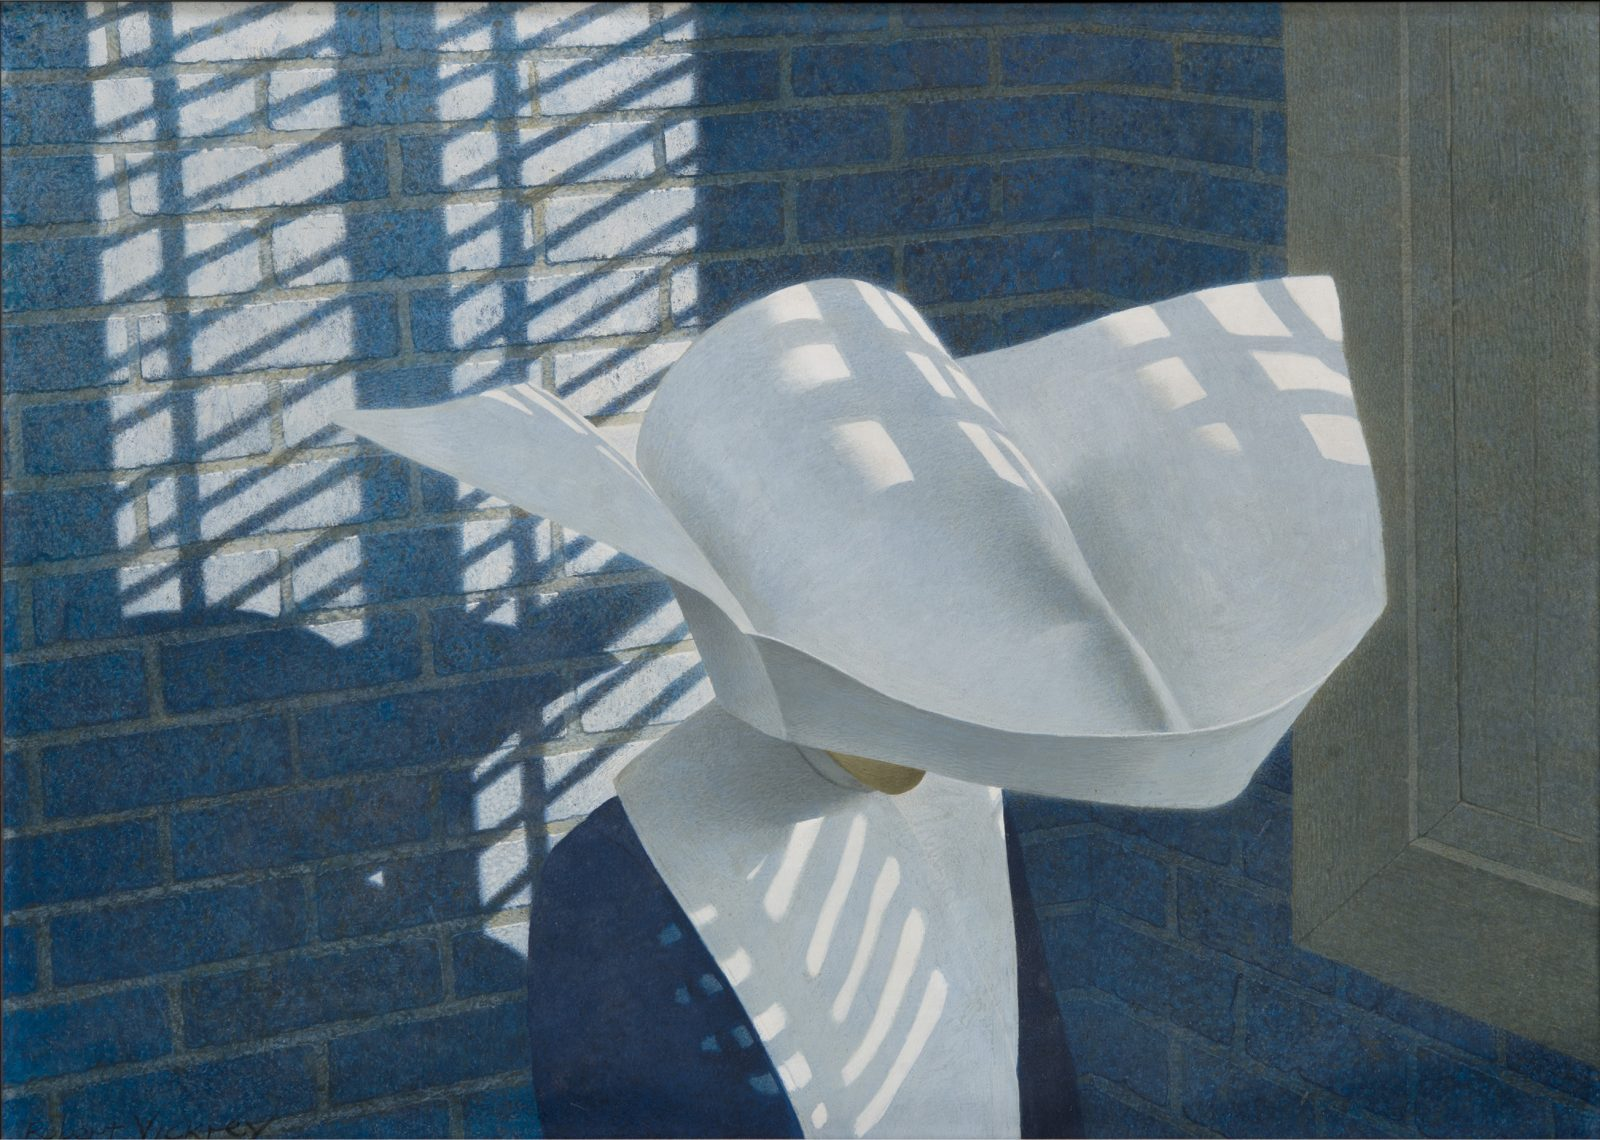 This work by Robert Vickrey shows a nun seen from above